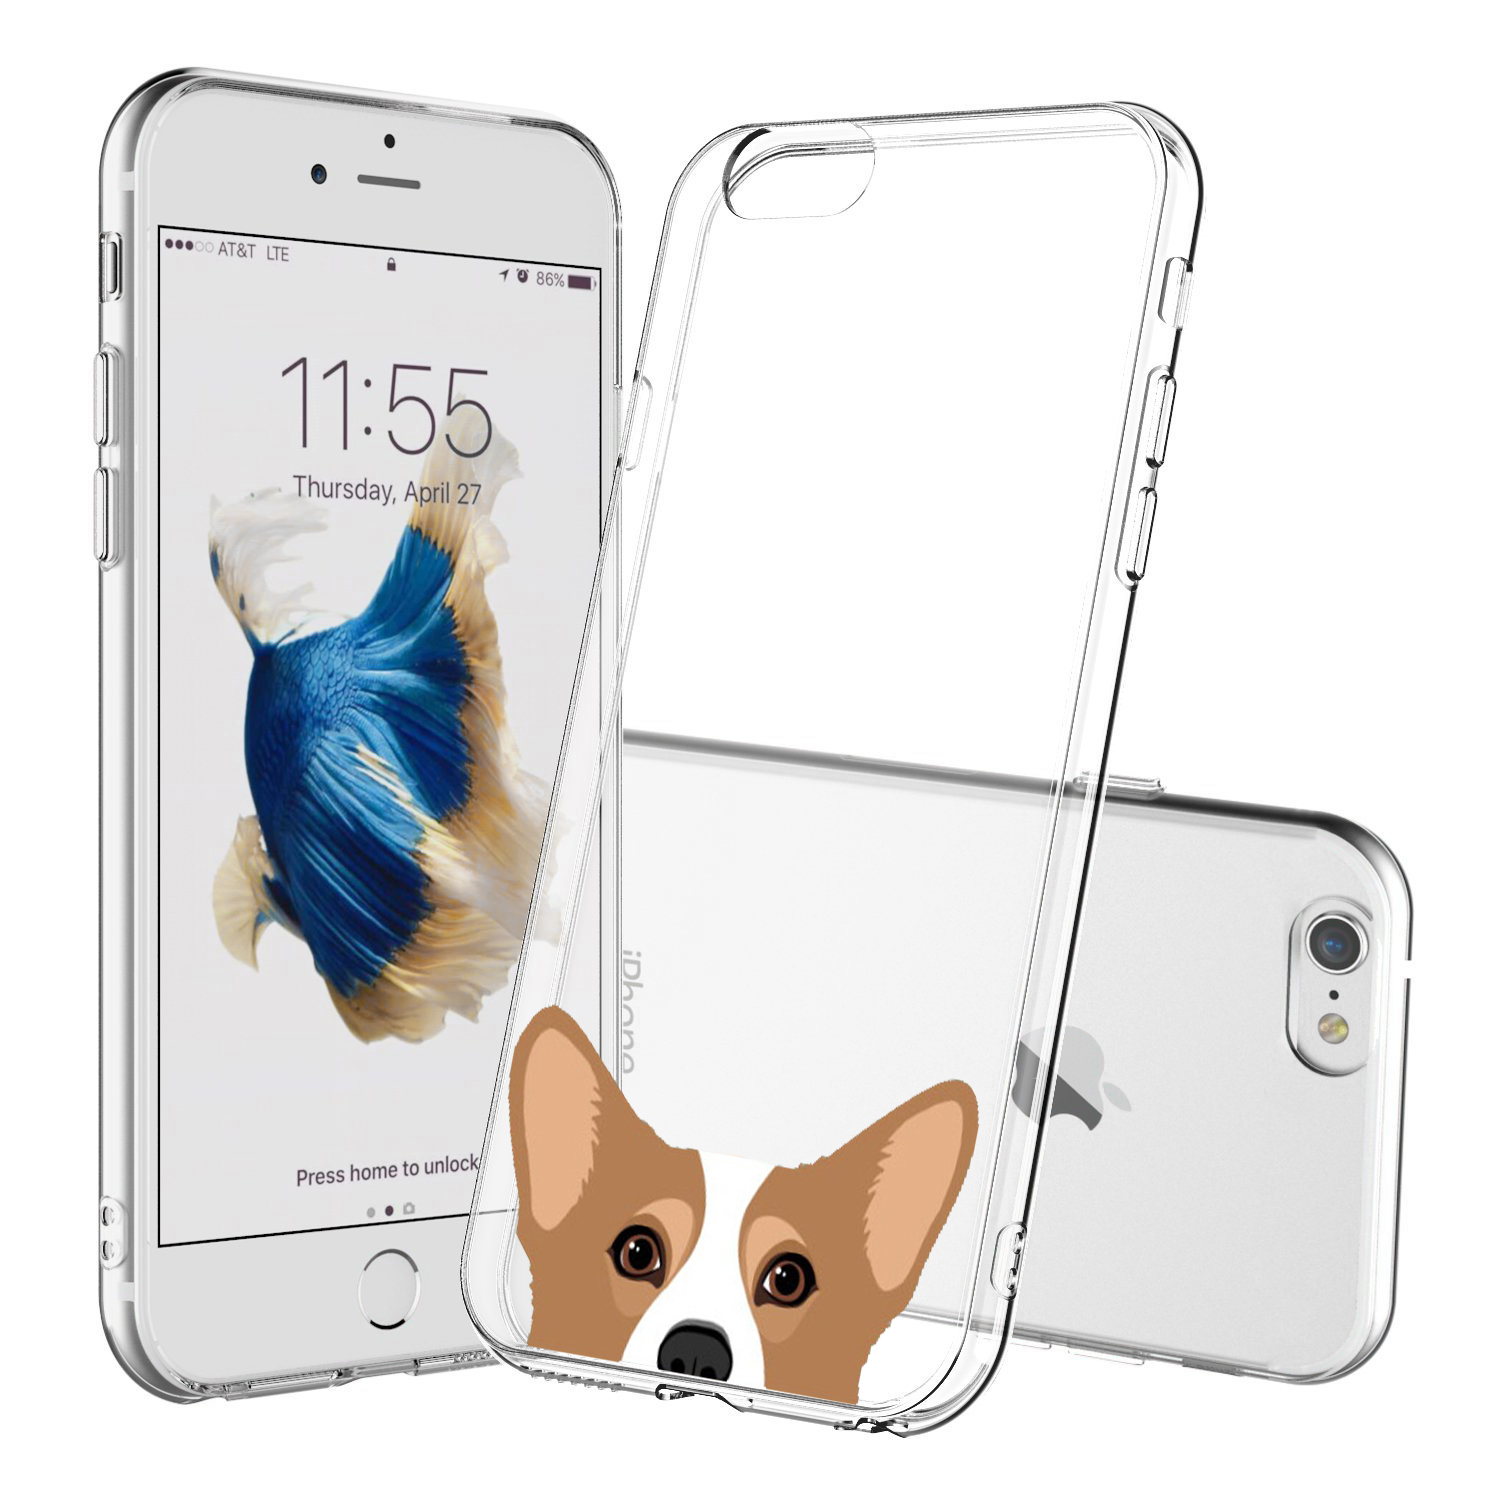 Made for Apple iPhone 8 Plus/ 7 Plus TPU Case, [Corgi] Slim Flexible Anti-shock Crystal Silicone Protective TPU Gel Skin Case Cover by Redshield